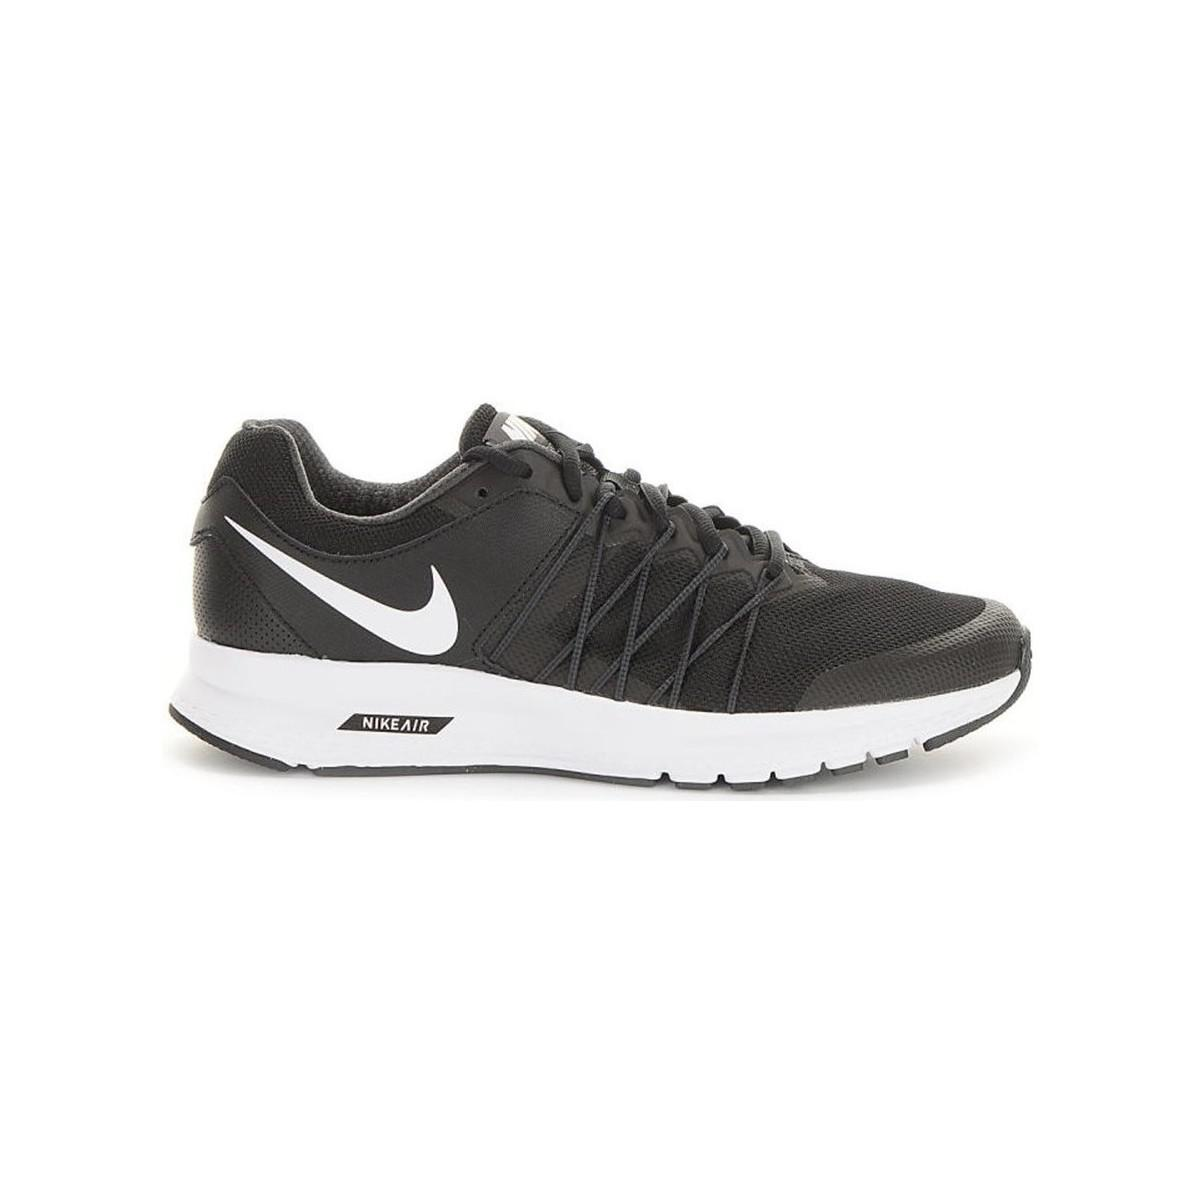 Nike Air Relentless 6 Men s Shoes (trainers) In Black in Black for ... c7f5e46b8